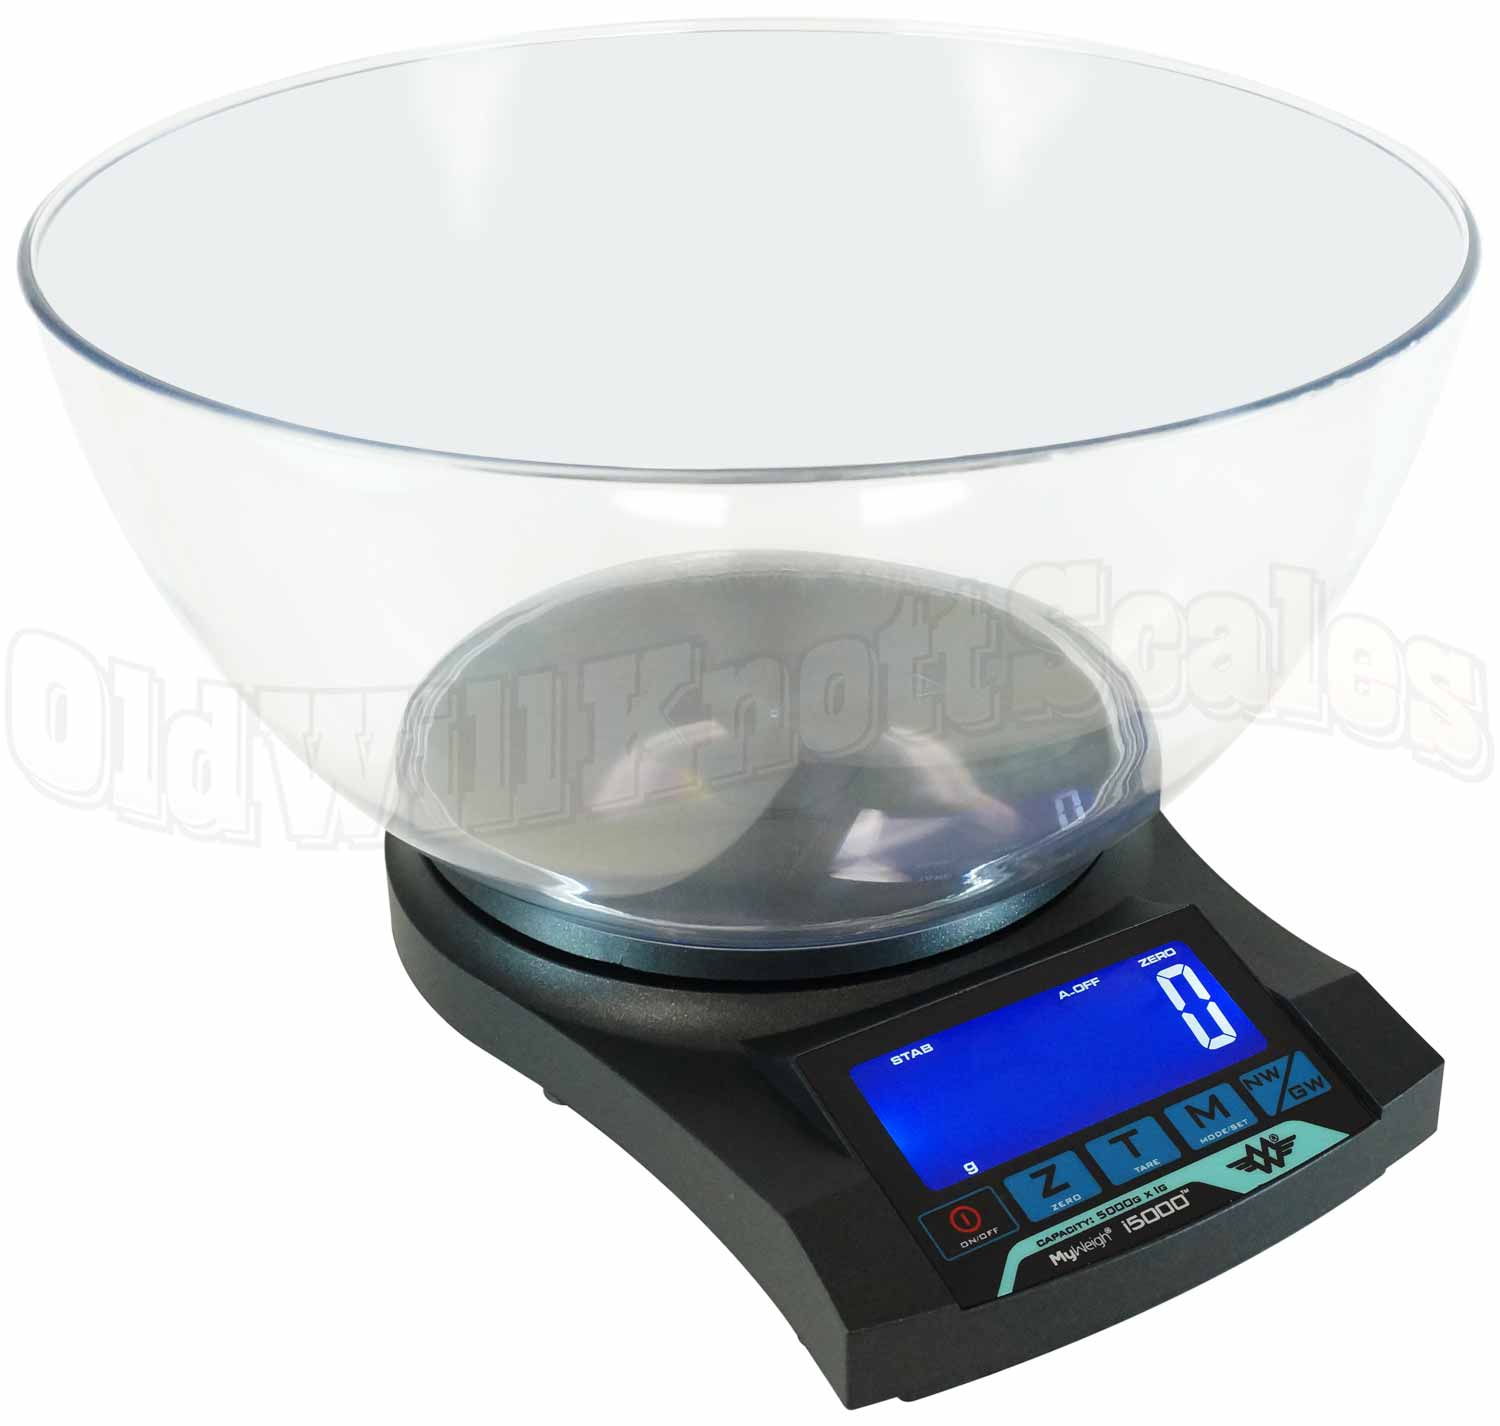 My Weigh Ibalance I5000 Gram Scale With Bowl